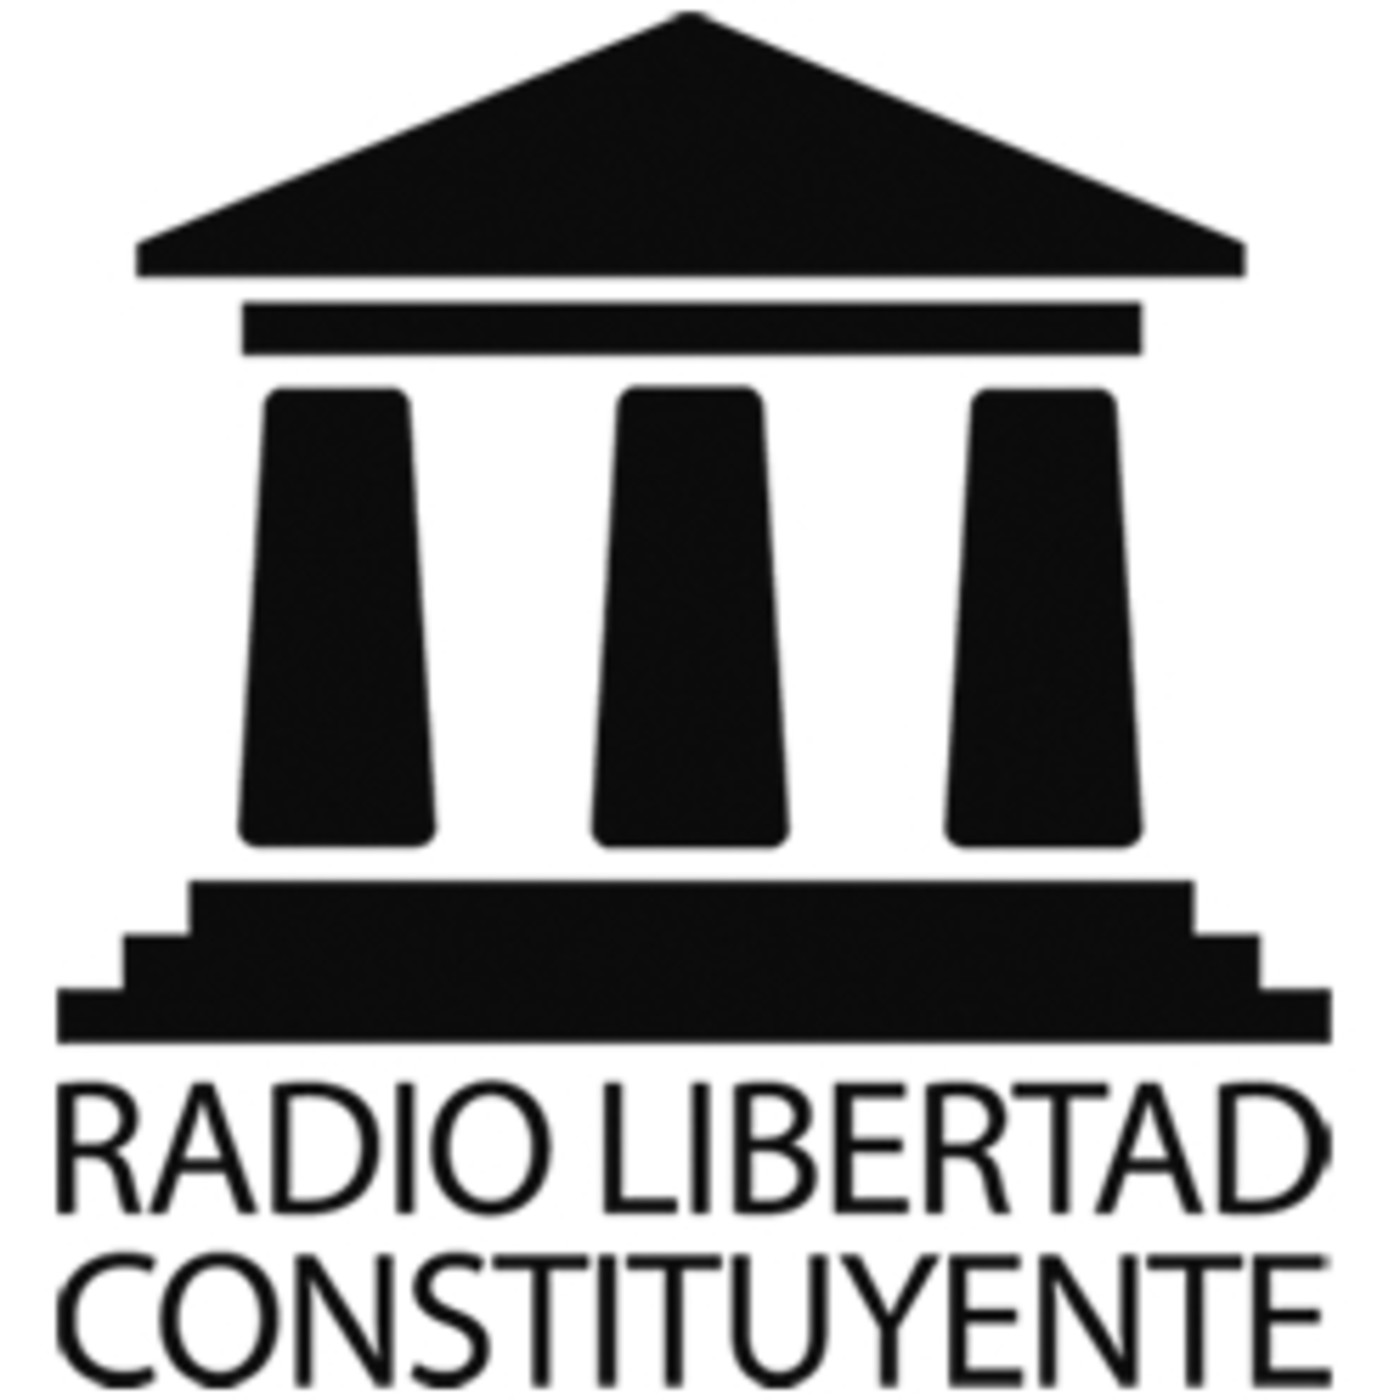 RLC (2020-10-06) - LPD, cap. 26: Justicia legal vs justicia popular